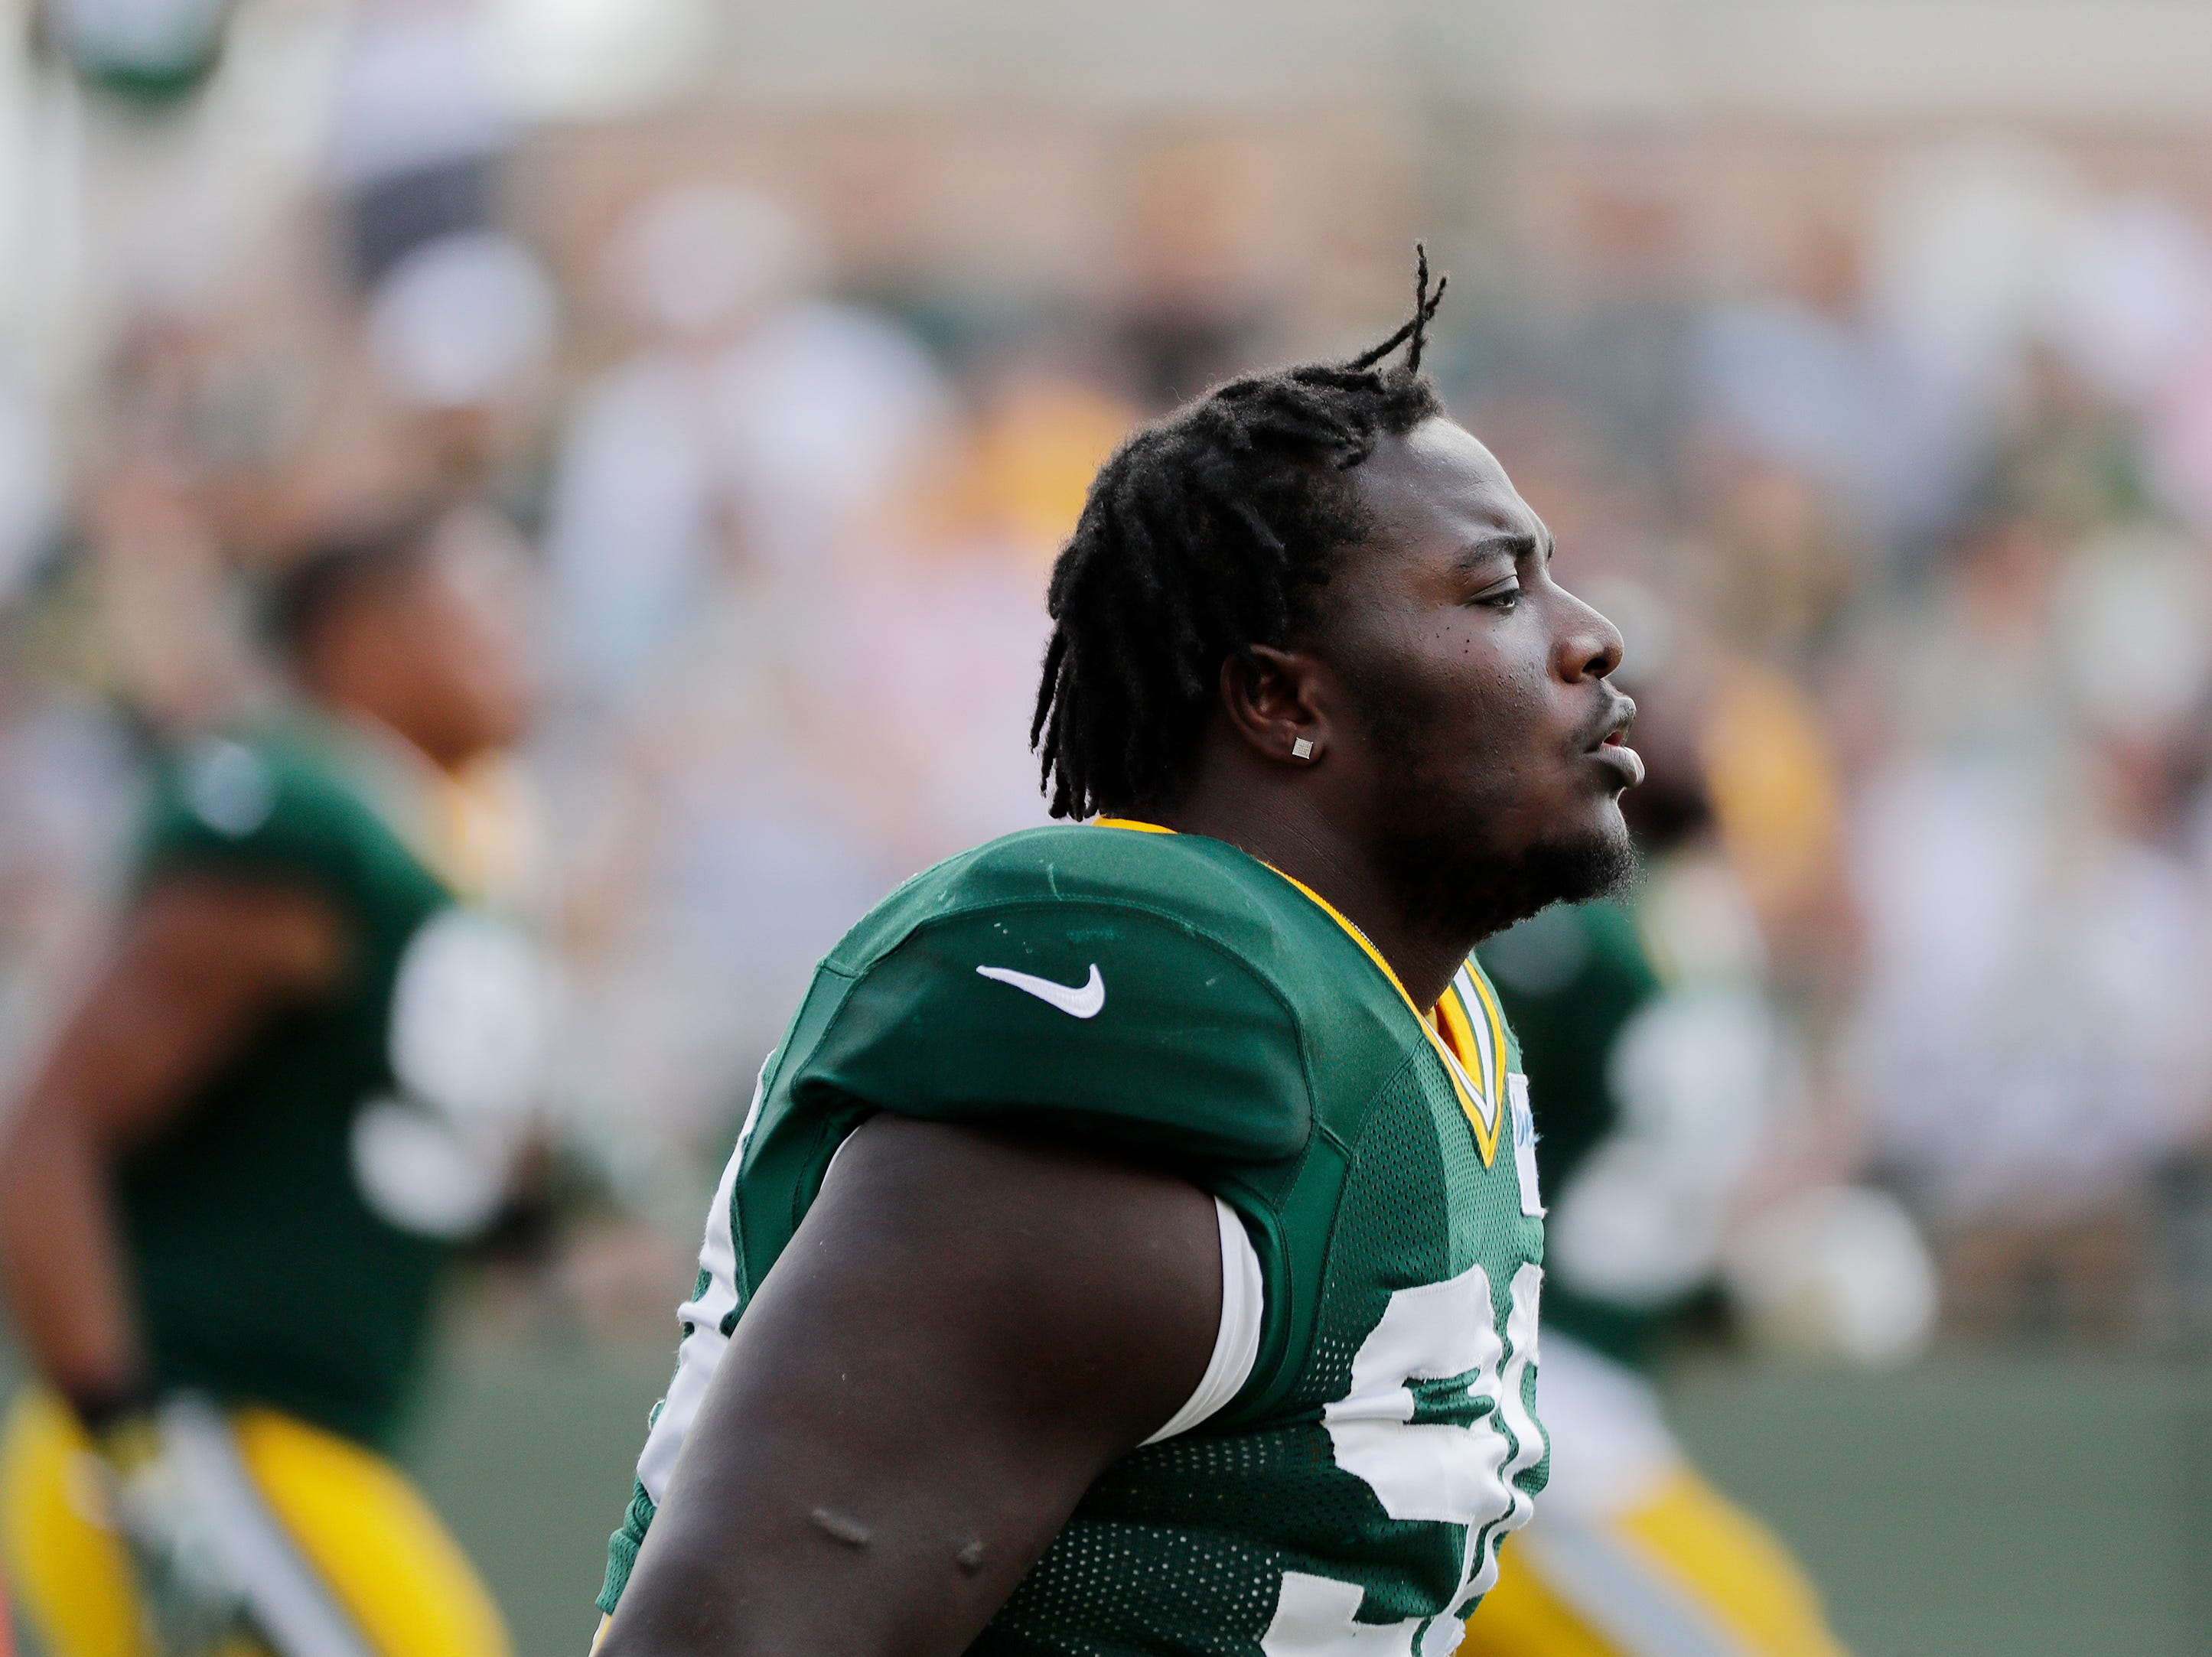 Green Bay Packers defensive tackle Montravius Adams (90) warms up during training camp practice at Ray Nitschke Field on Friday, August 3, 2018 in Ashwaubenon, Wis. 